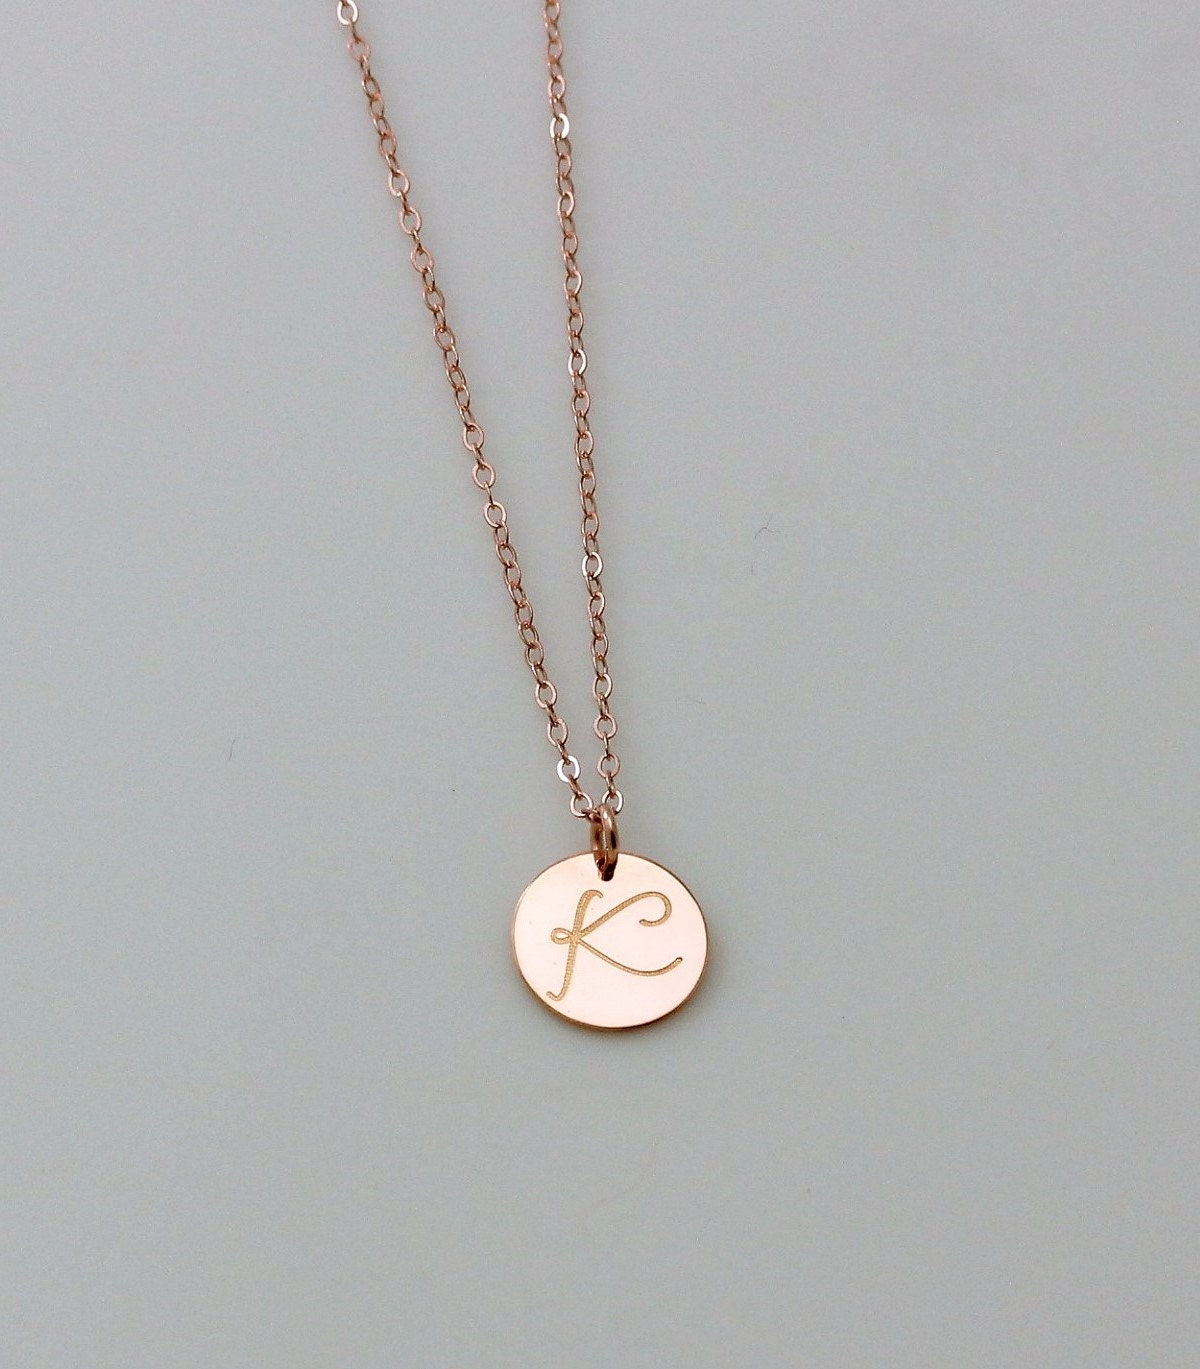 Personalized circle necklace rose gold initial necklace for Rose gold personalized jewelry